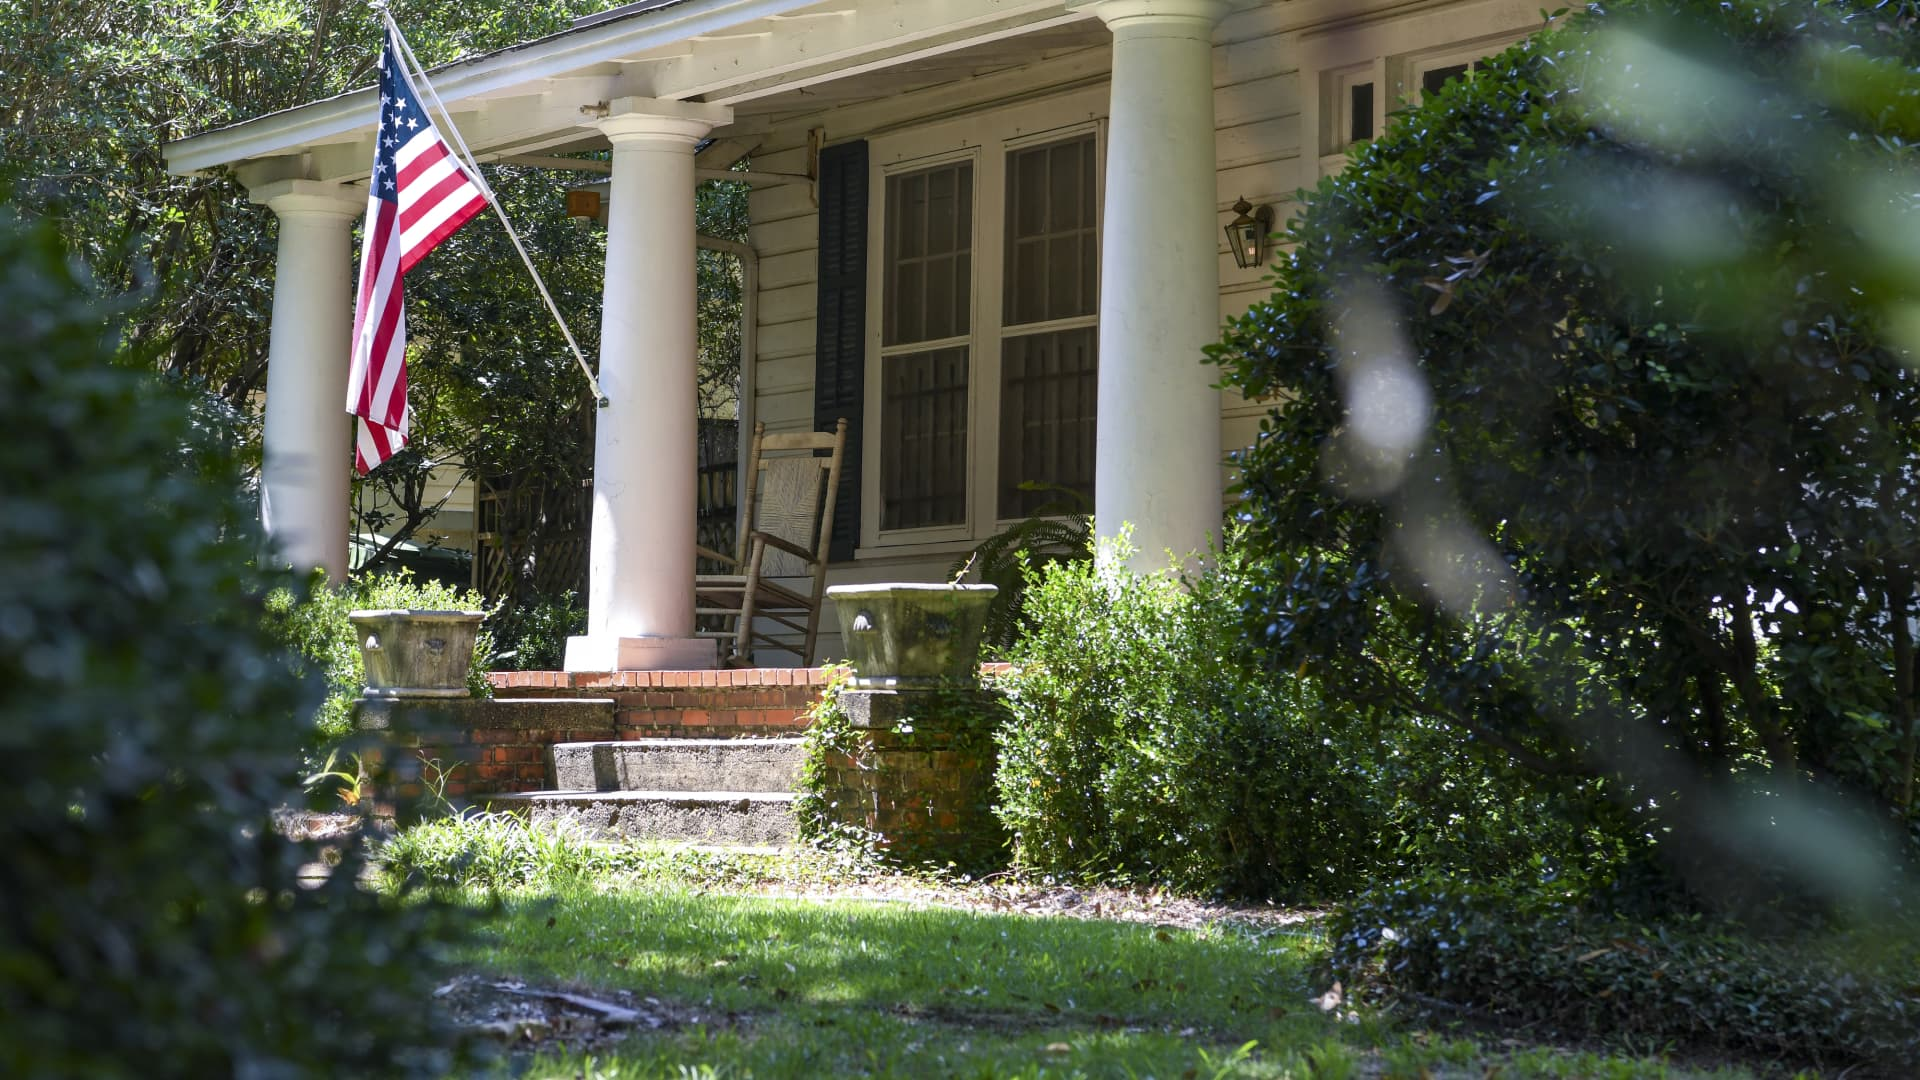 An American flag is displayed outside a home in the Cloverdale neighborhood of Montgomery, Alabama.